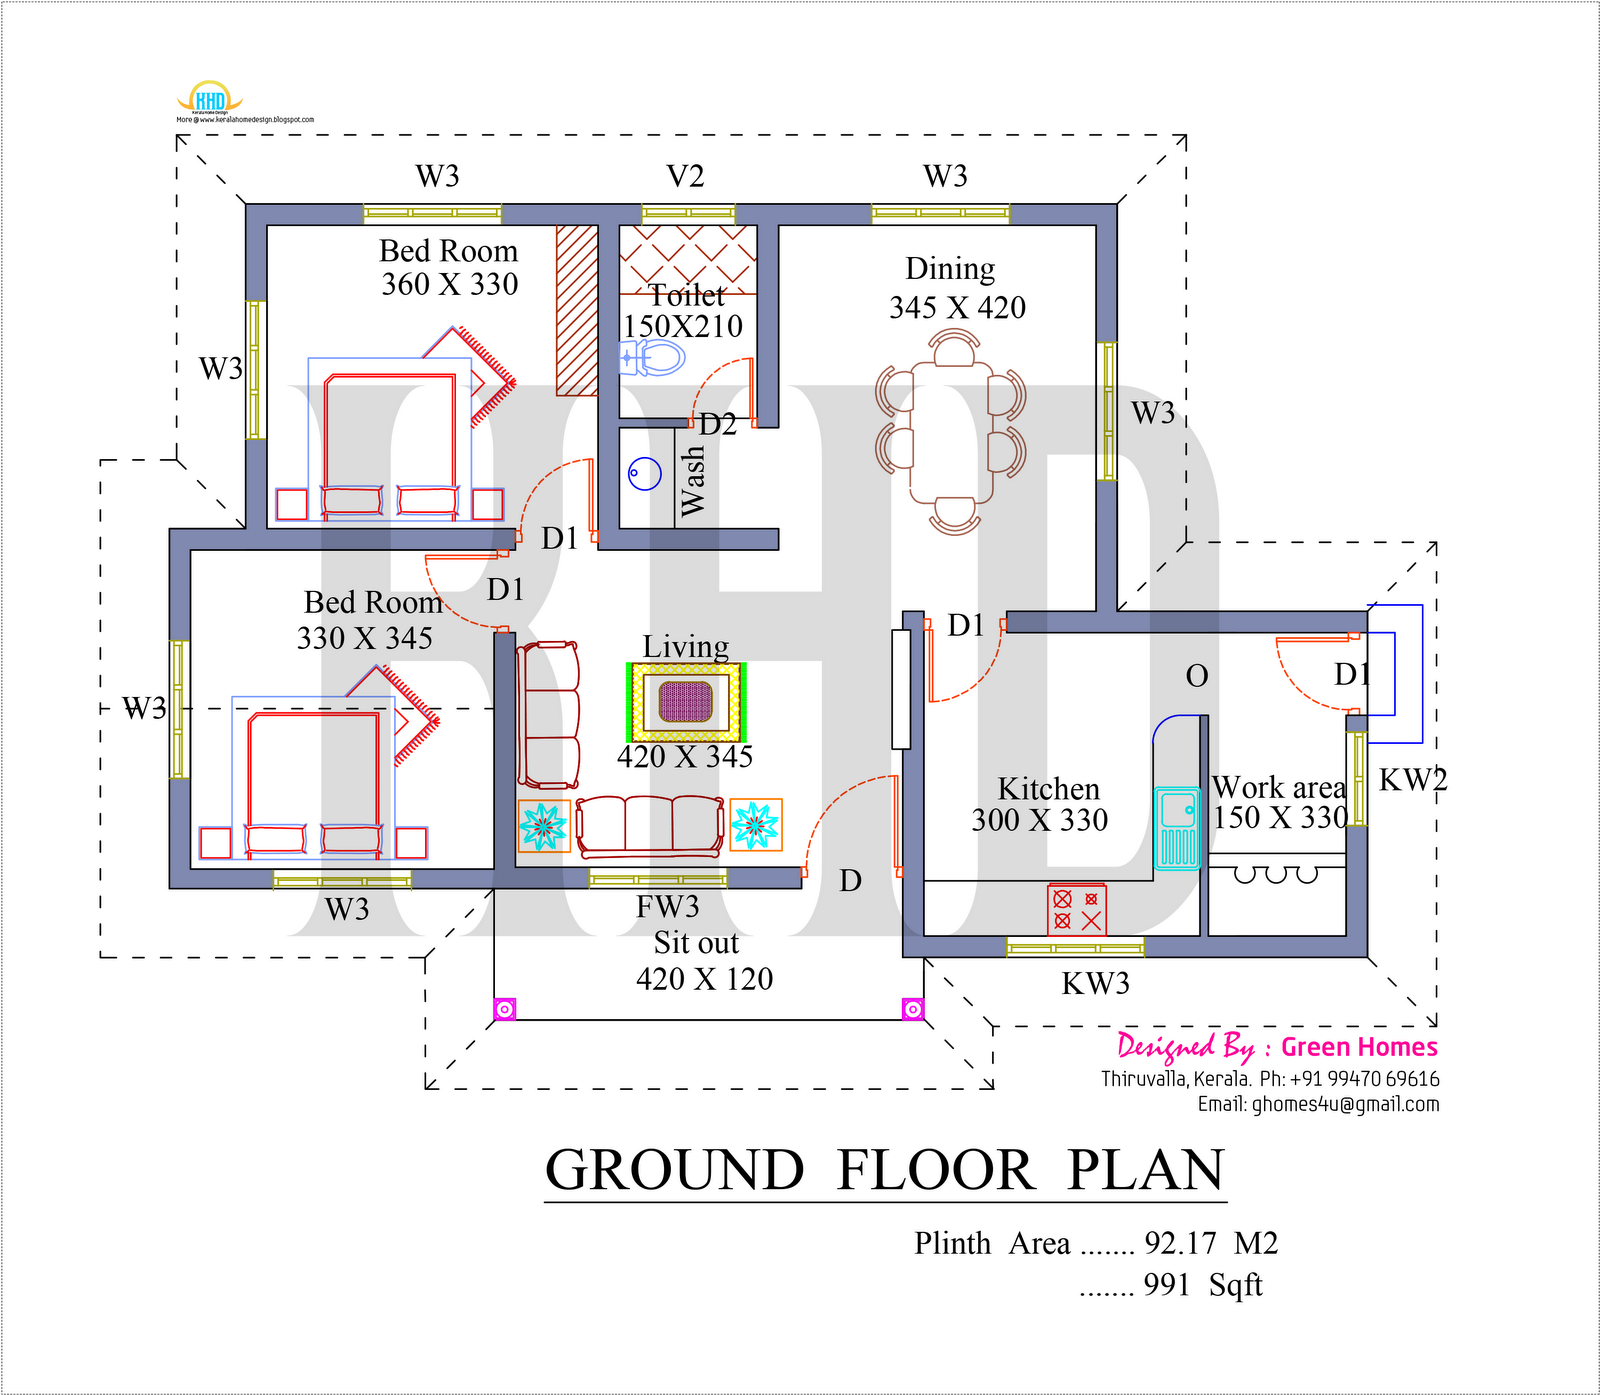 Kerala Home Design And Floor Plans: Elevation Square Feet Kerala Home Design Floor Plans